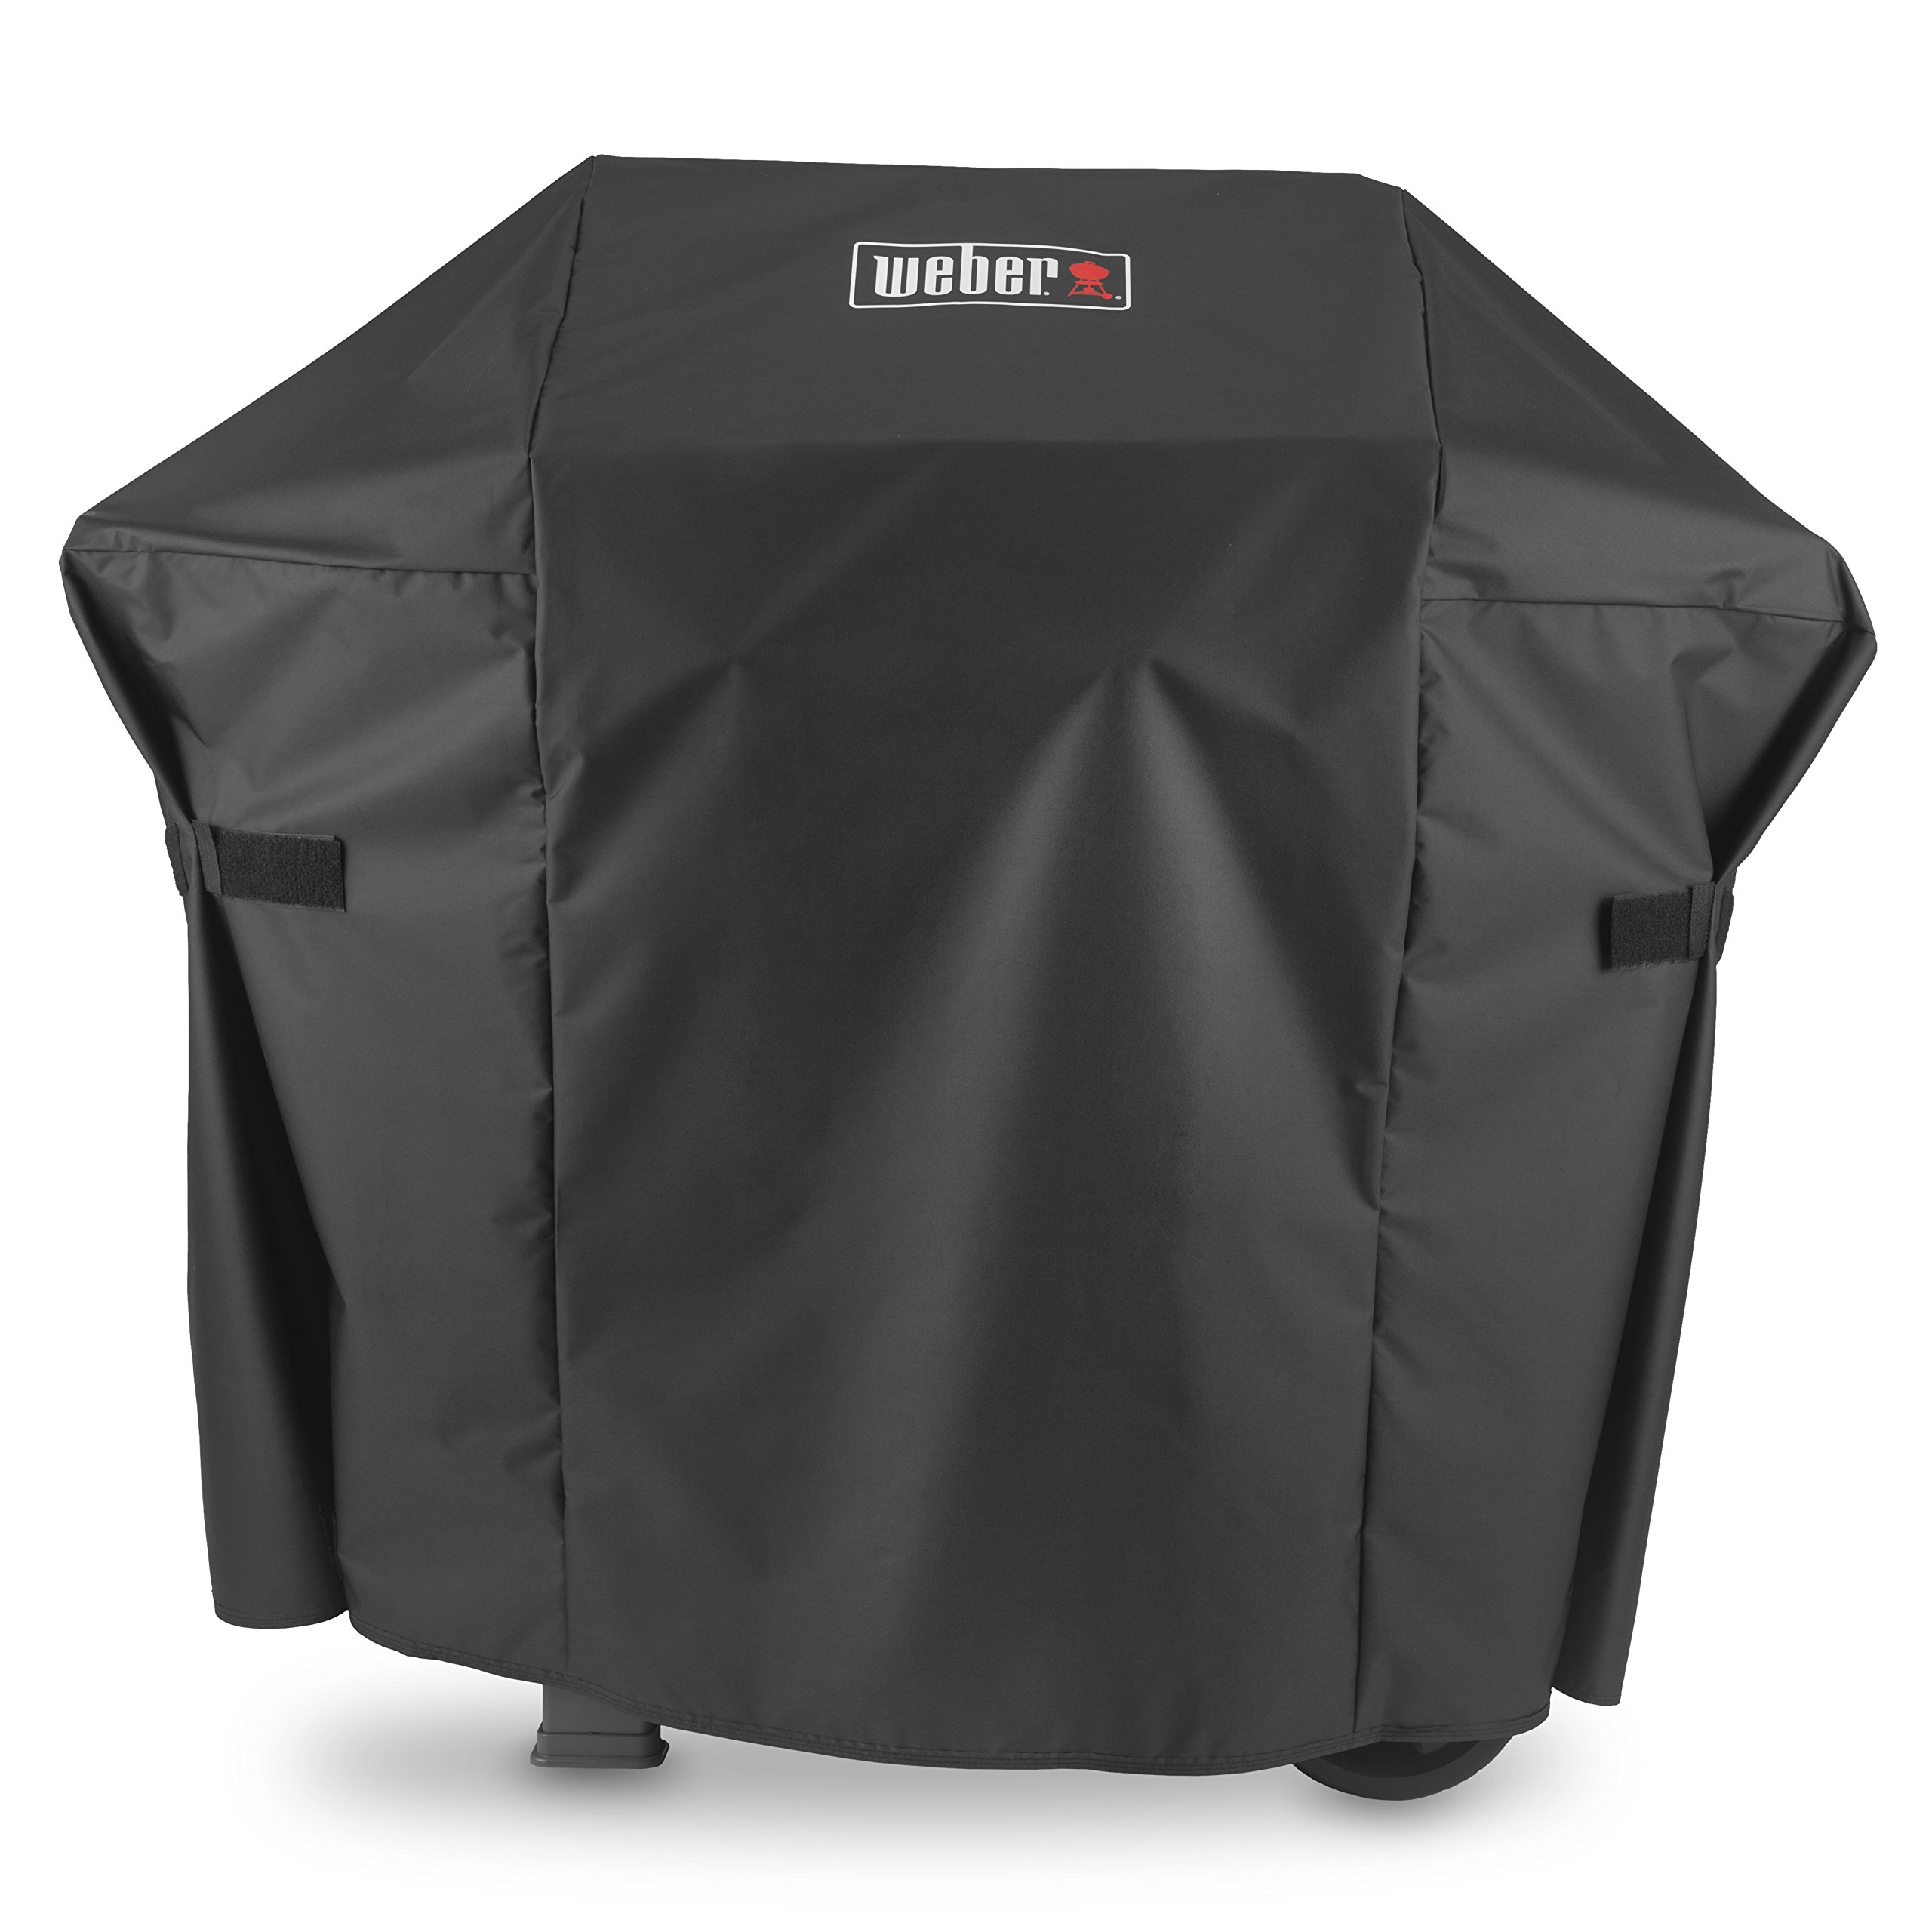 Weber 7138 Premium Cover Spirit II 200 Grill Accessory by Weber